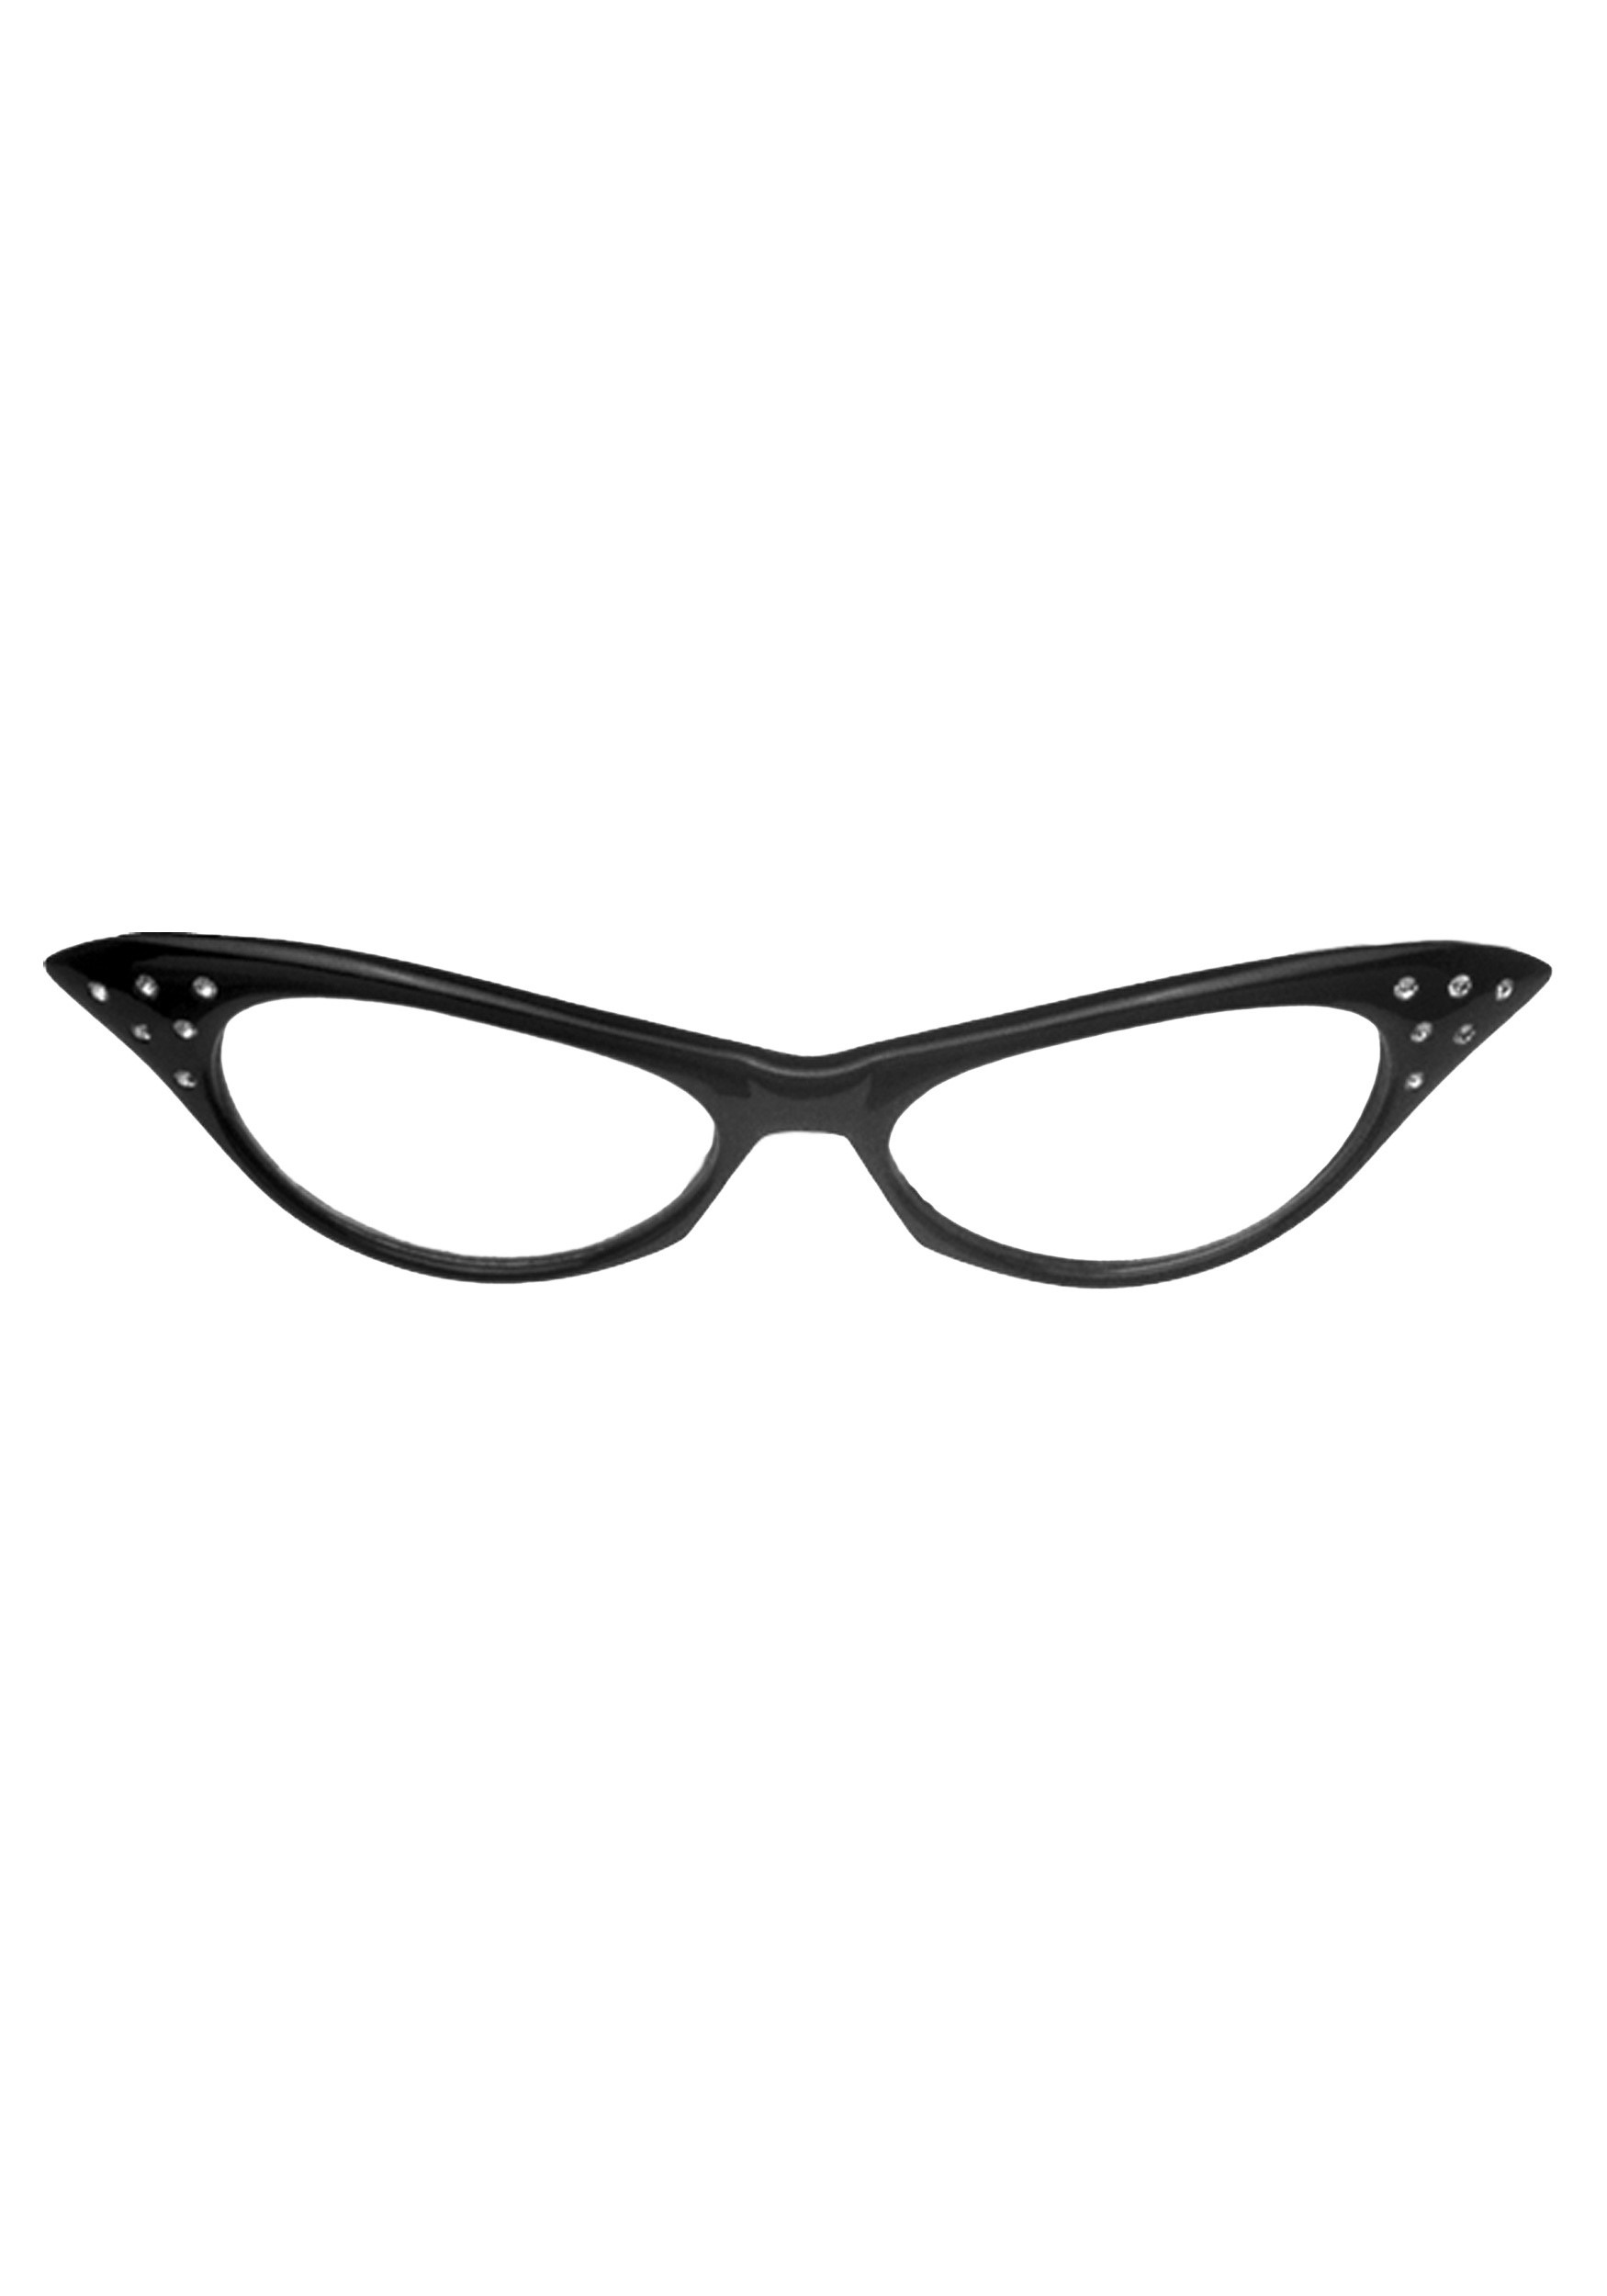 b4c276995e Cat Eye Glasses - 1950s Costume Accessories